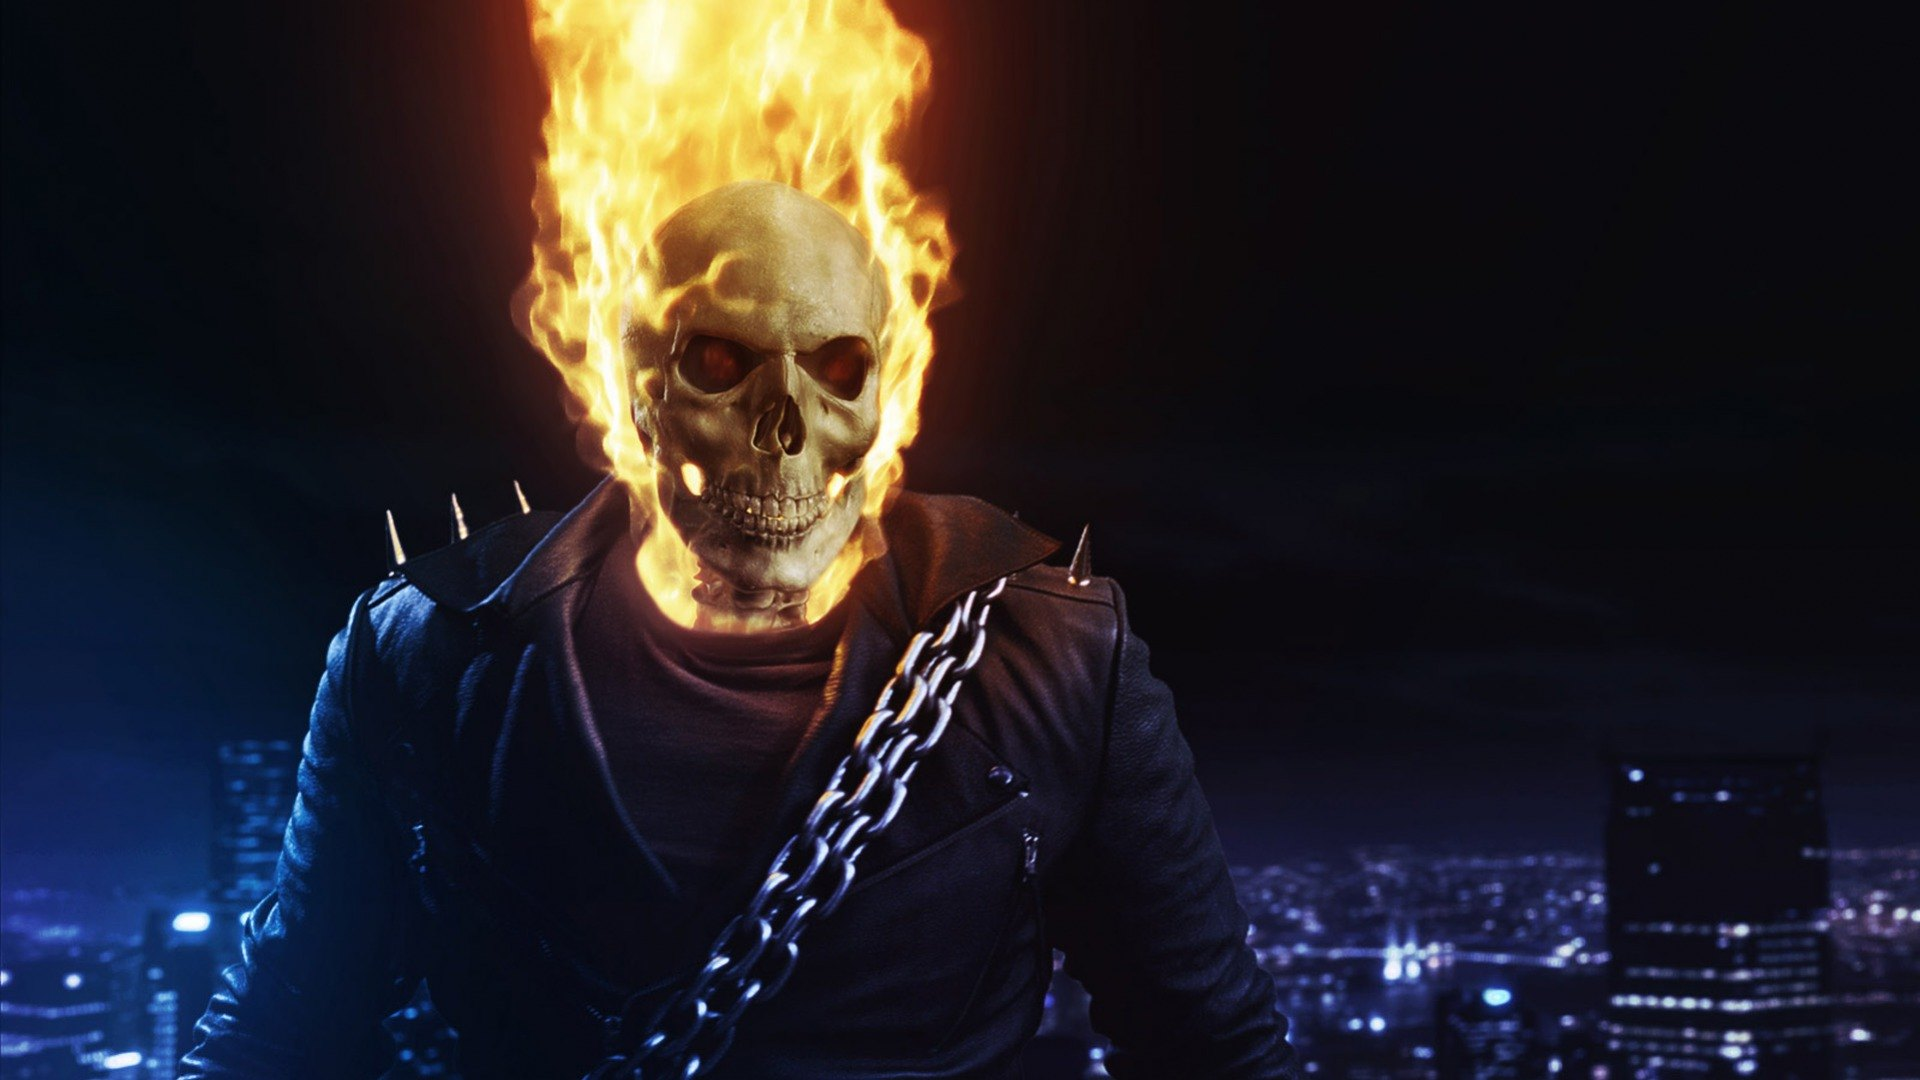 1920x1080 Ghost Rider Movie Laptop Full Hd 1080p Hd 4k Wallpapers